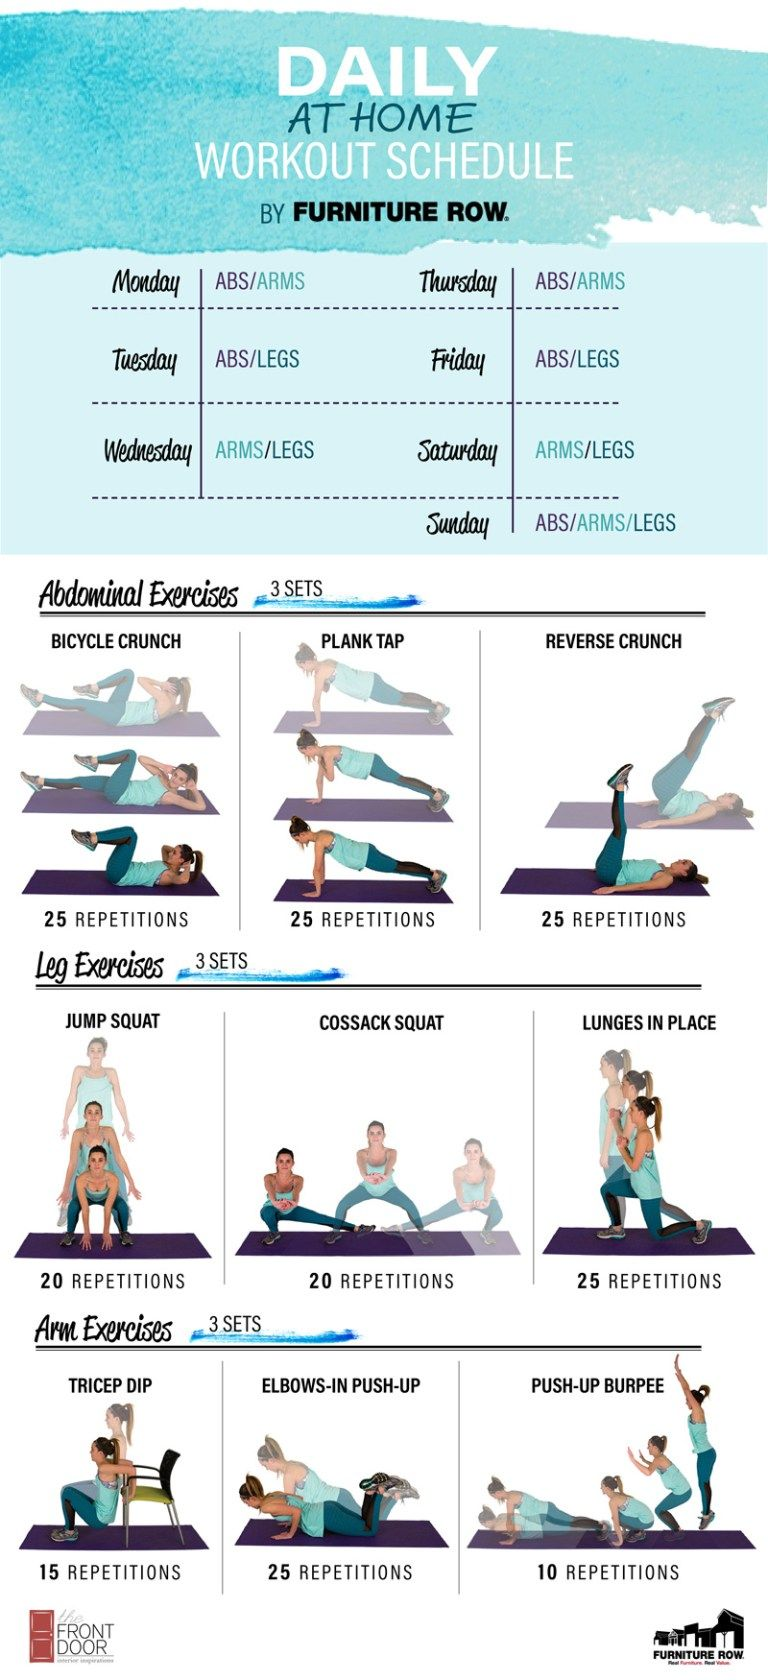 Daily Exercise Schedule Working Out At Home The Front Door By Furniture Row Home Workout Schedule Easy At Home Workouts At Home Workouts